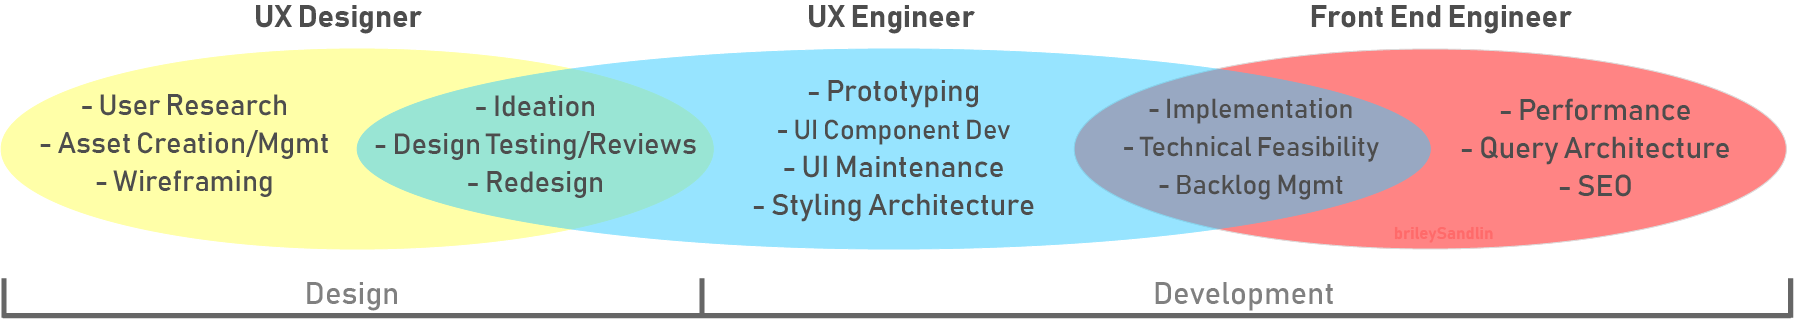 Ux Engineers What We Are Computer Science Has Majorly Evolved By Briley Sandlin Ux Planet